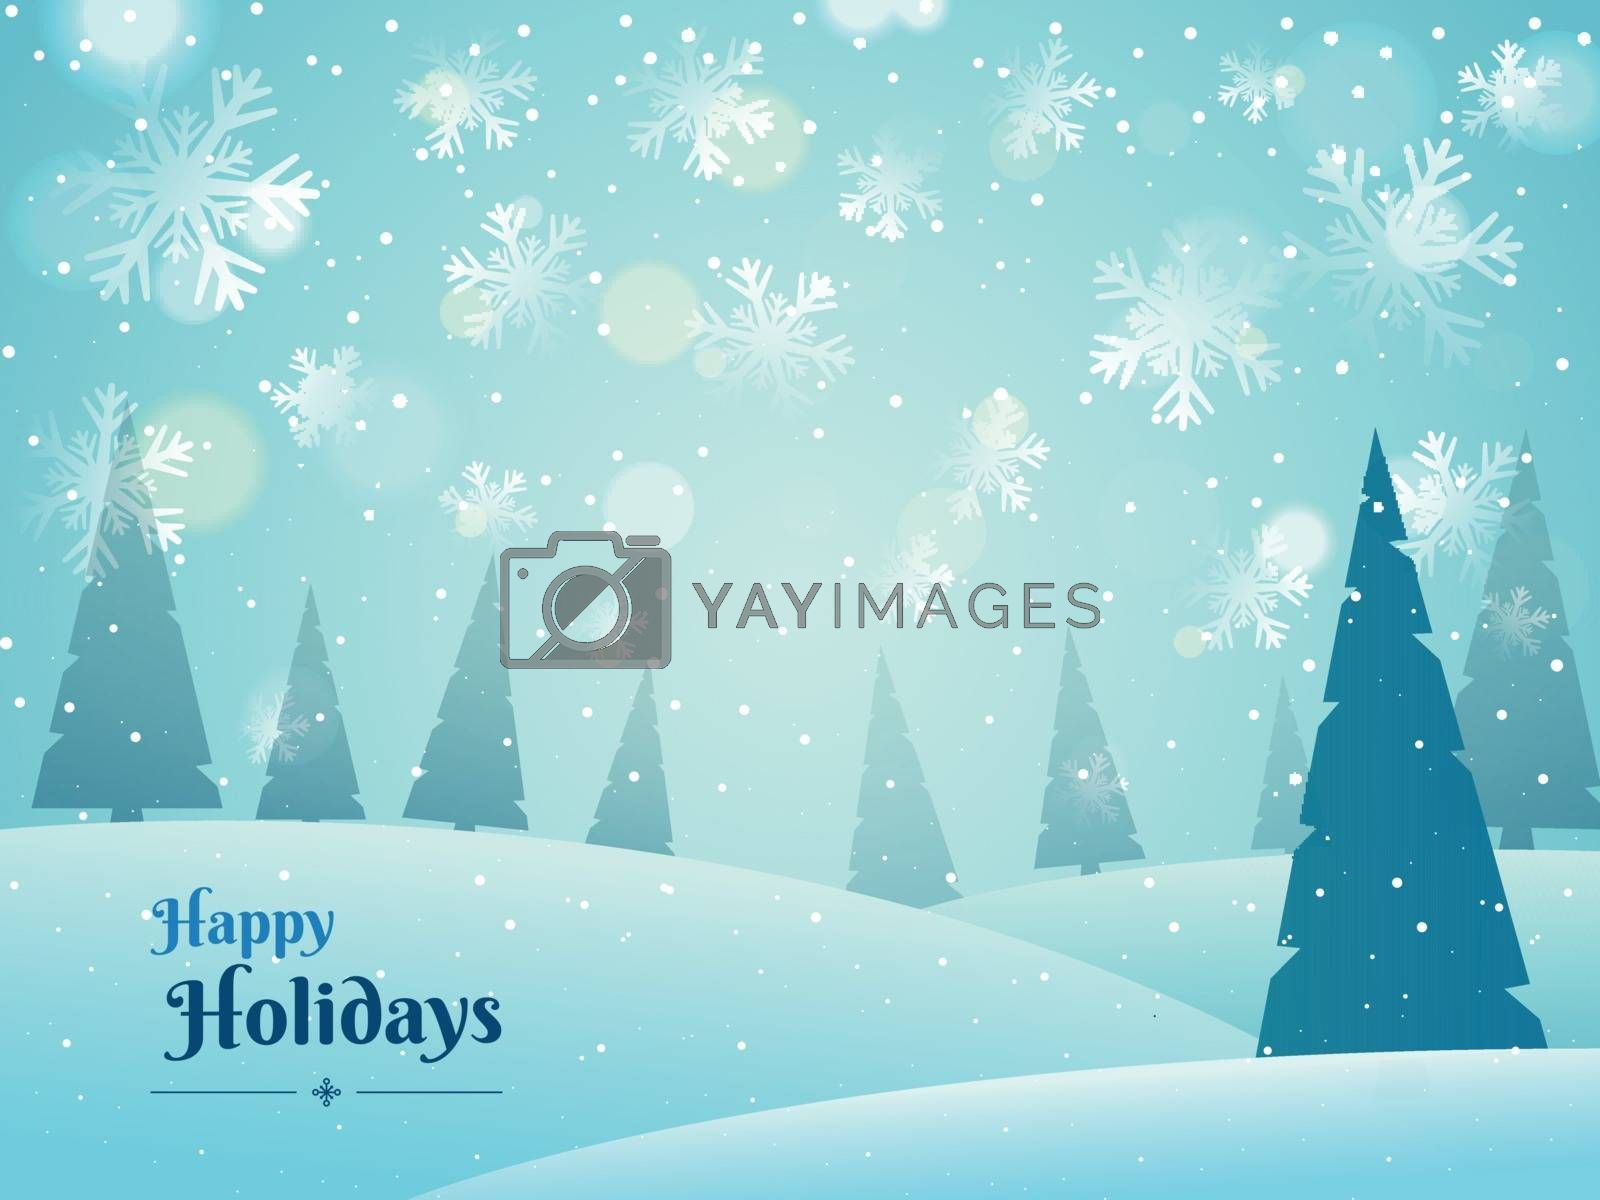 Snowflake background decorated with xmas trees for Happy Holidays celebration concept. Can be used as greeting card design.